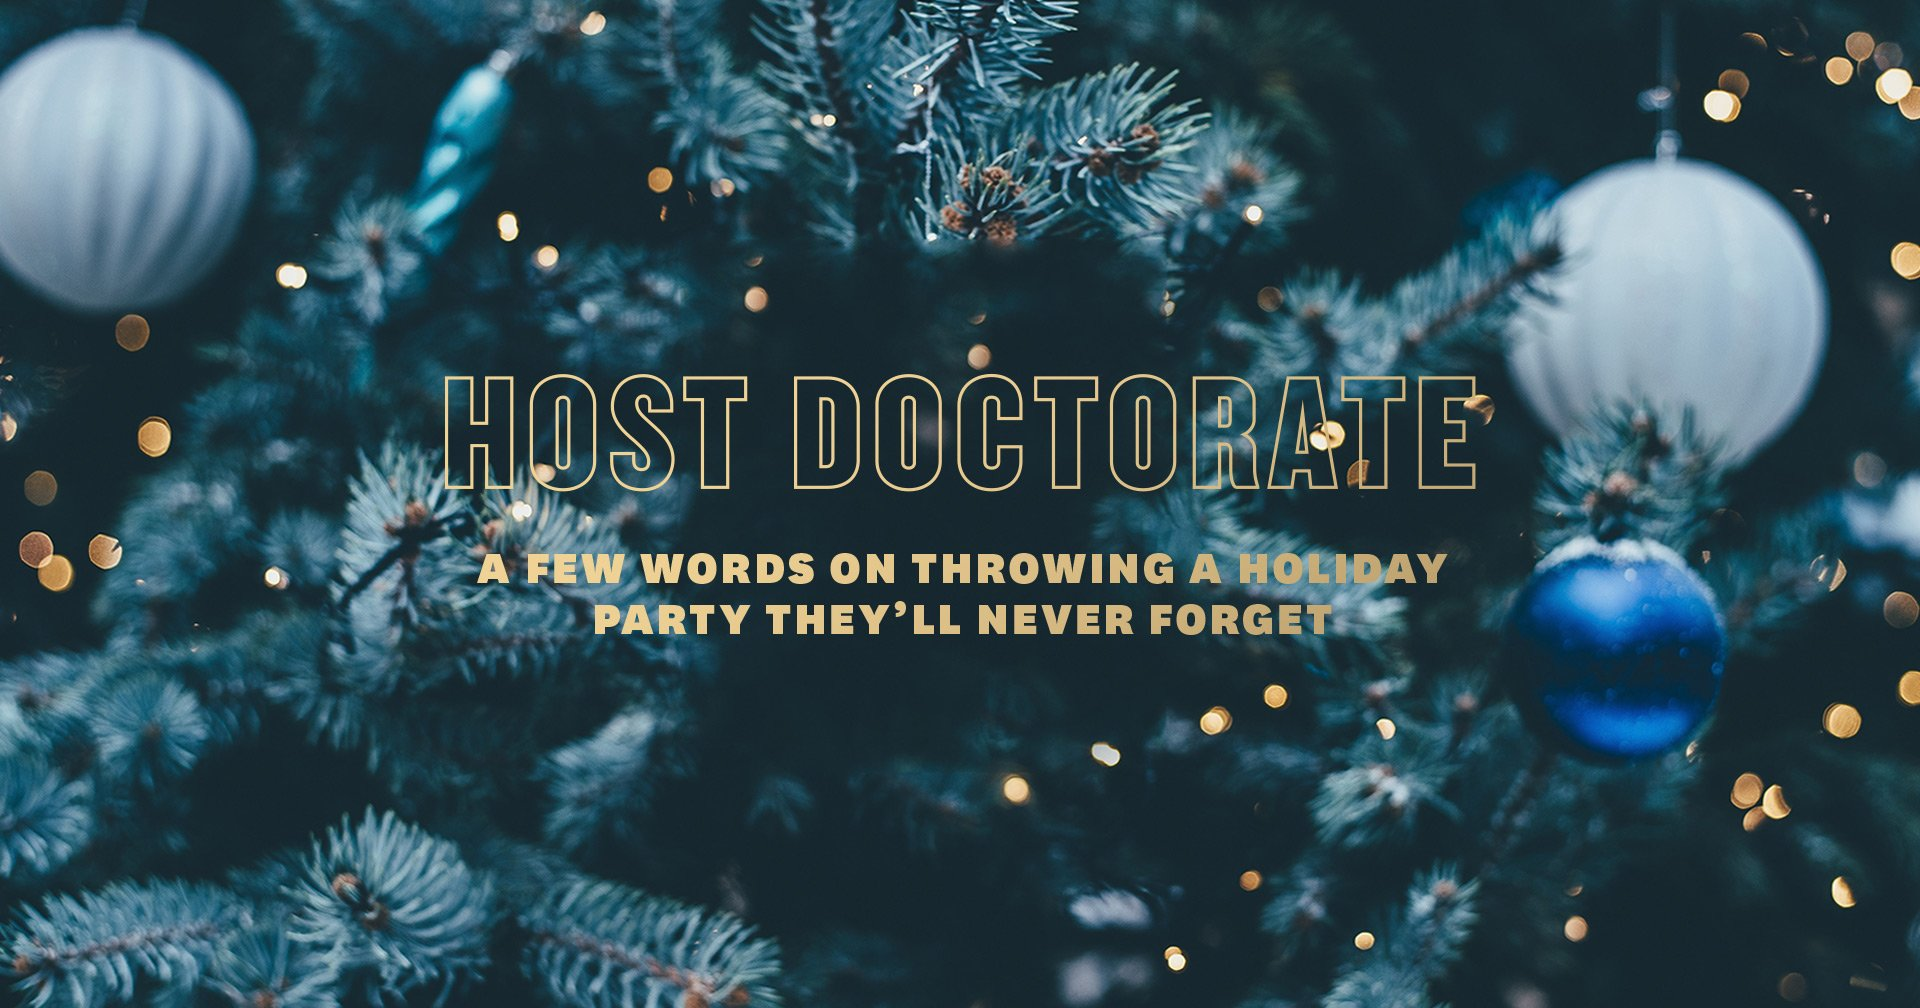 A Few Words on Throwing a Holiday Party They'll Never Forget